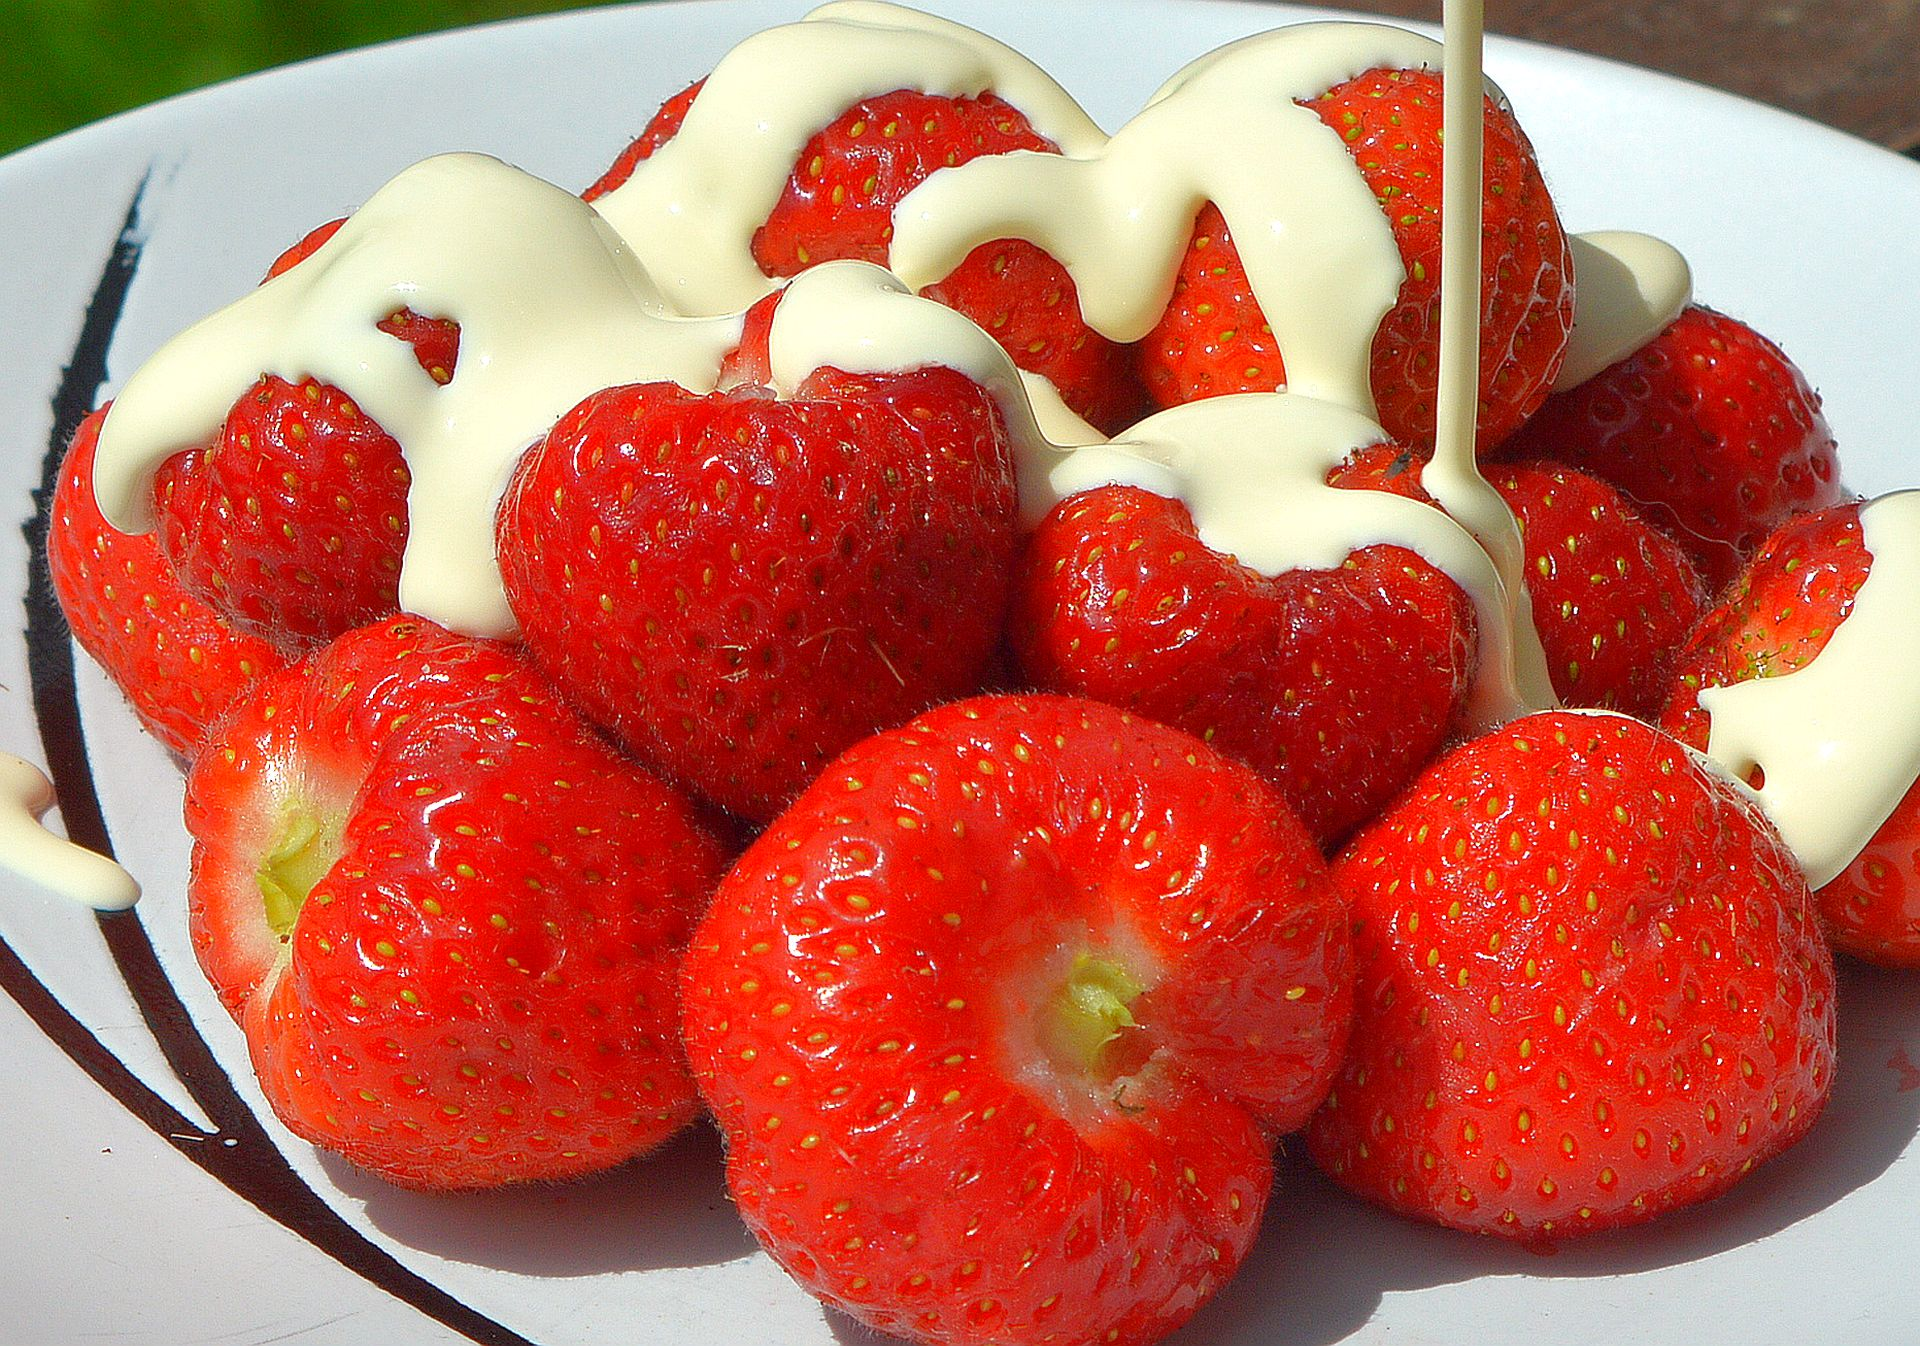 Strawberries And Cream File: strawberries and cream wimbledon 2014.jpg ...